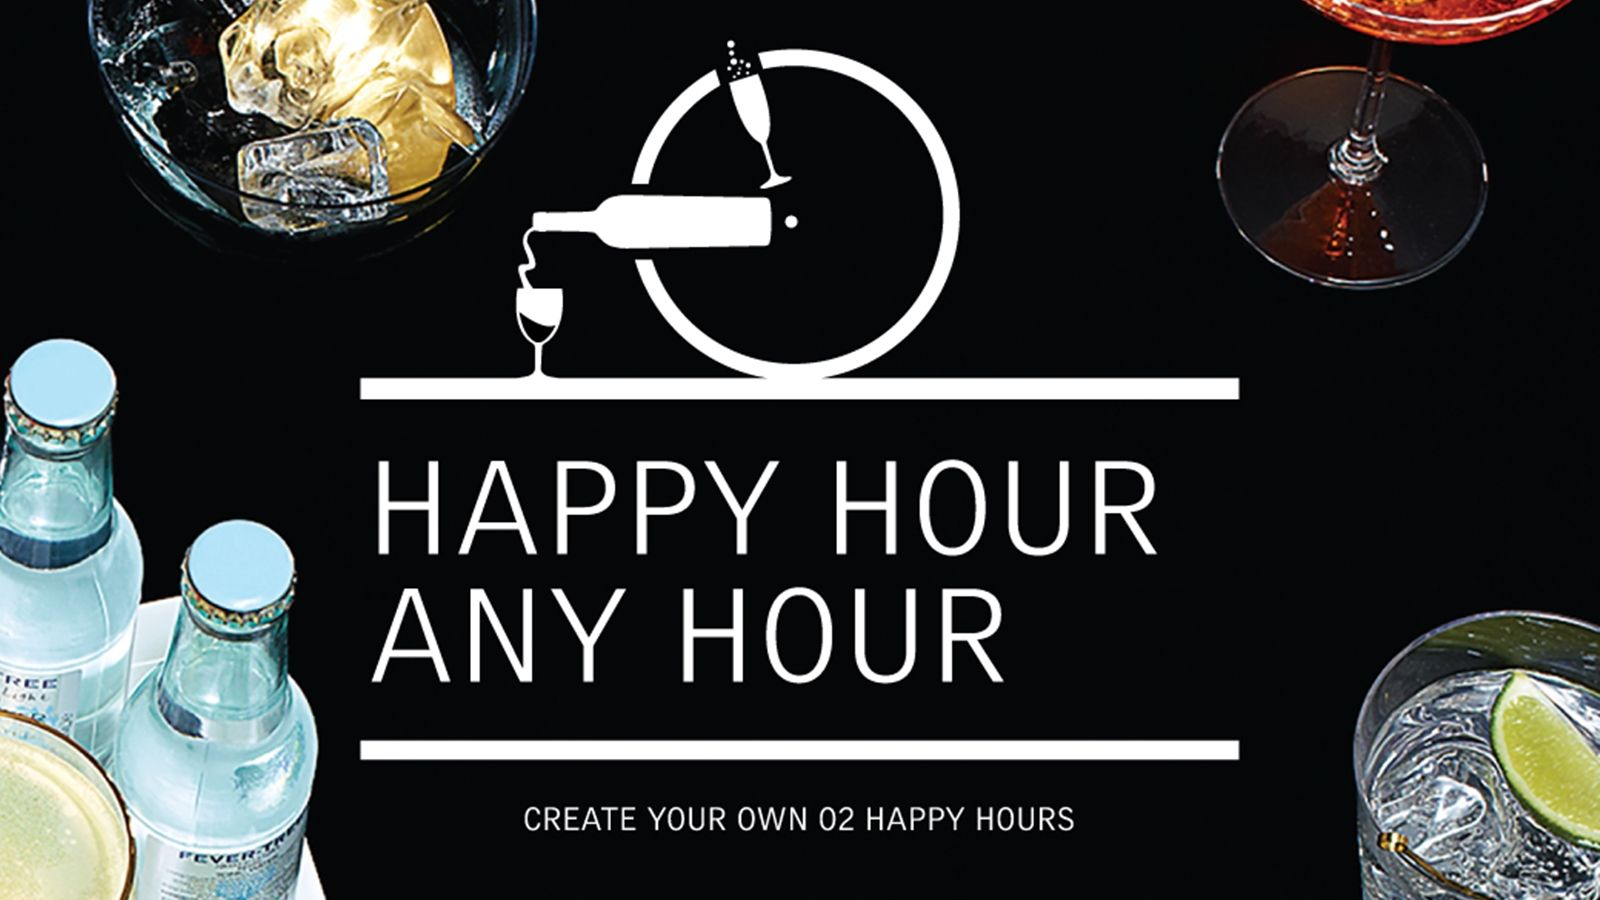 Happy Hour Any Hour